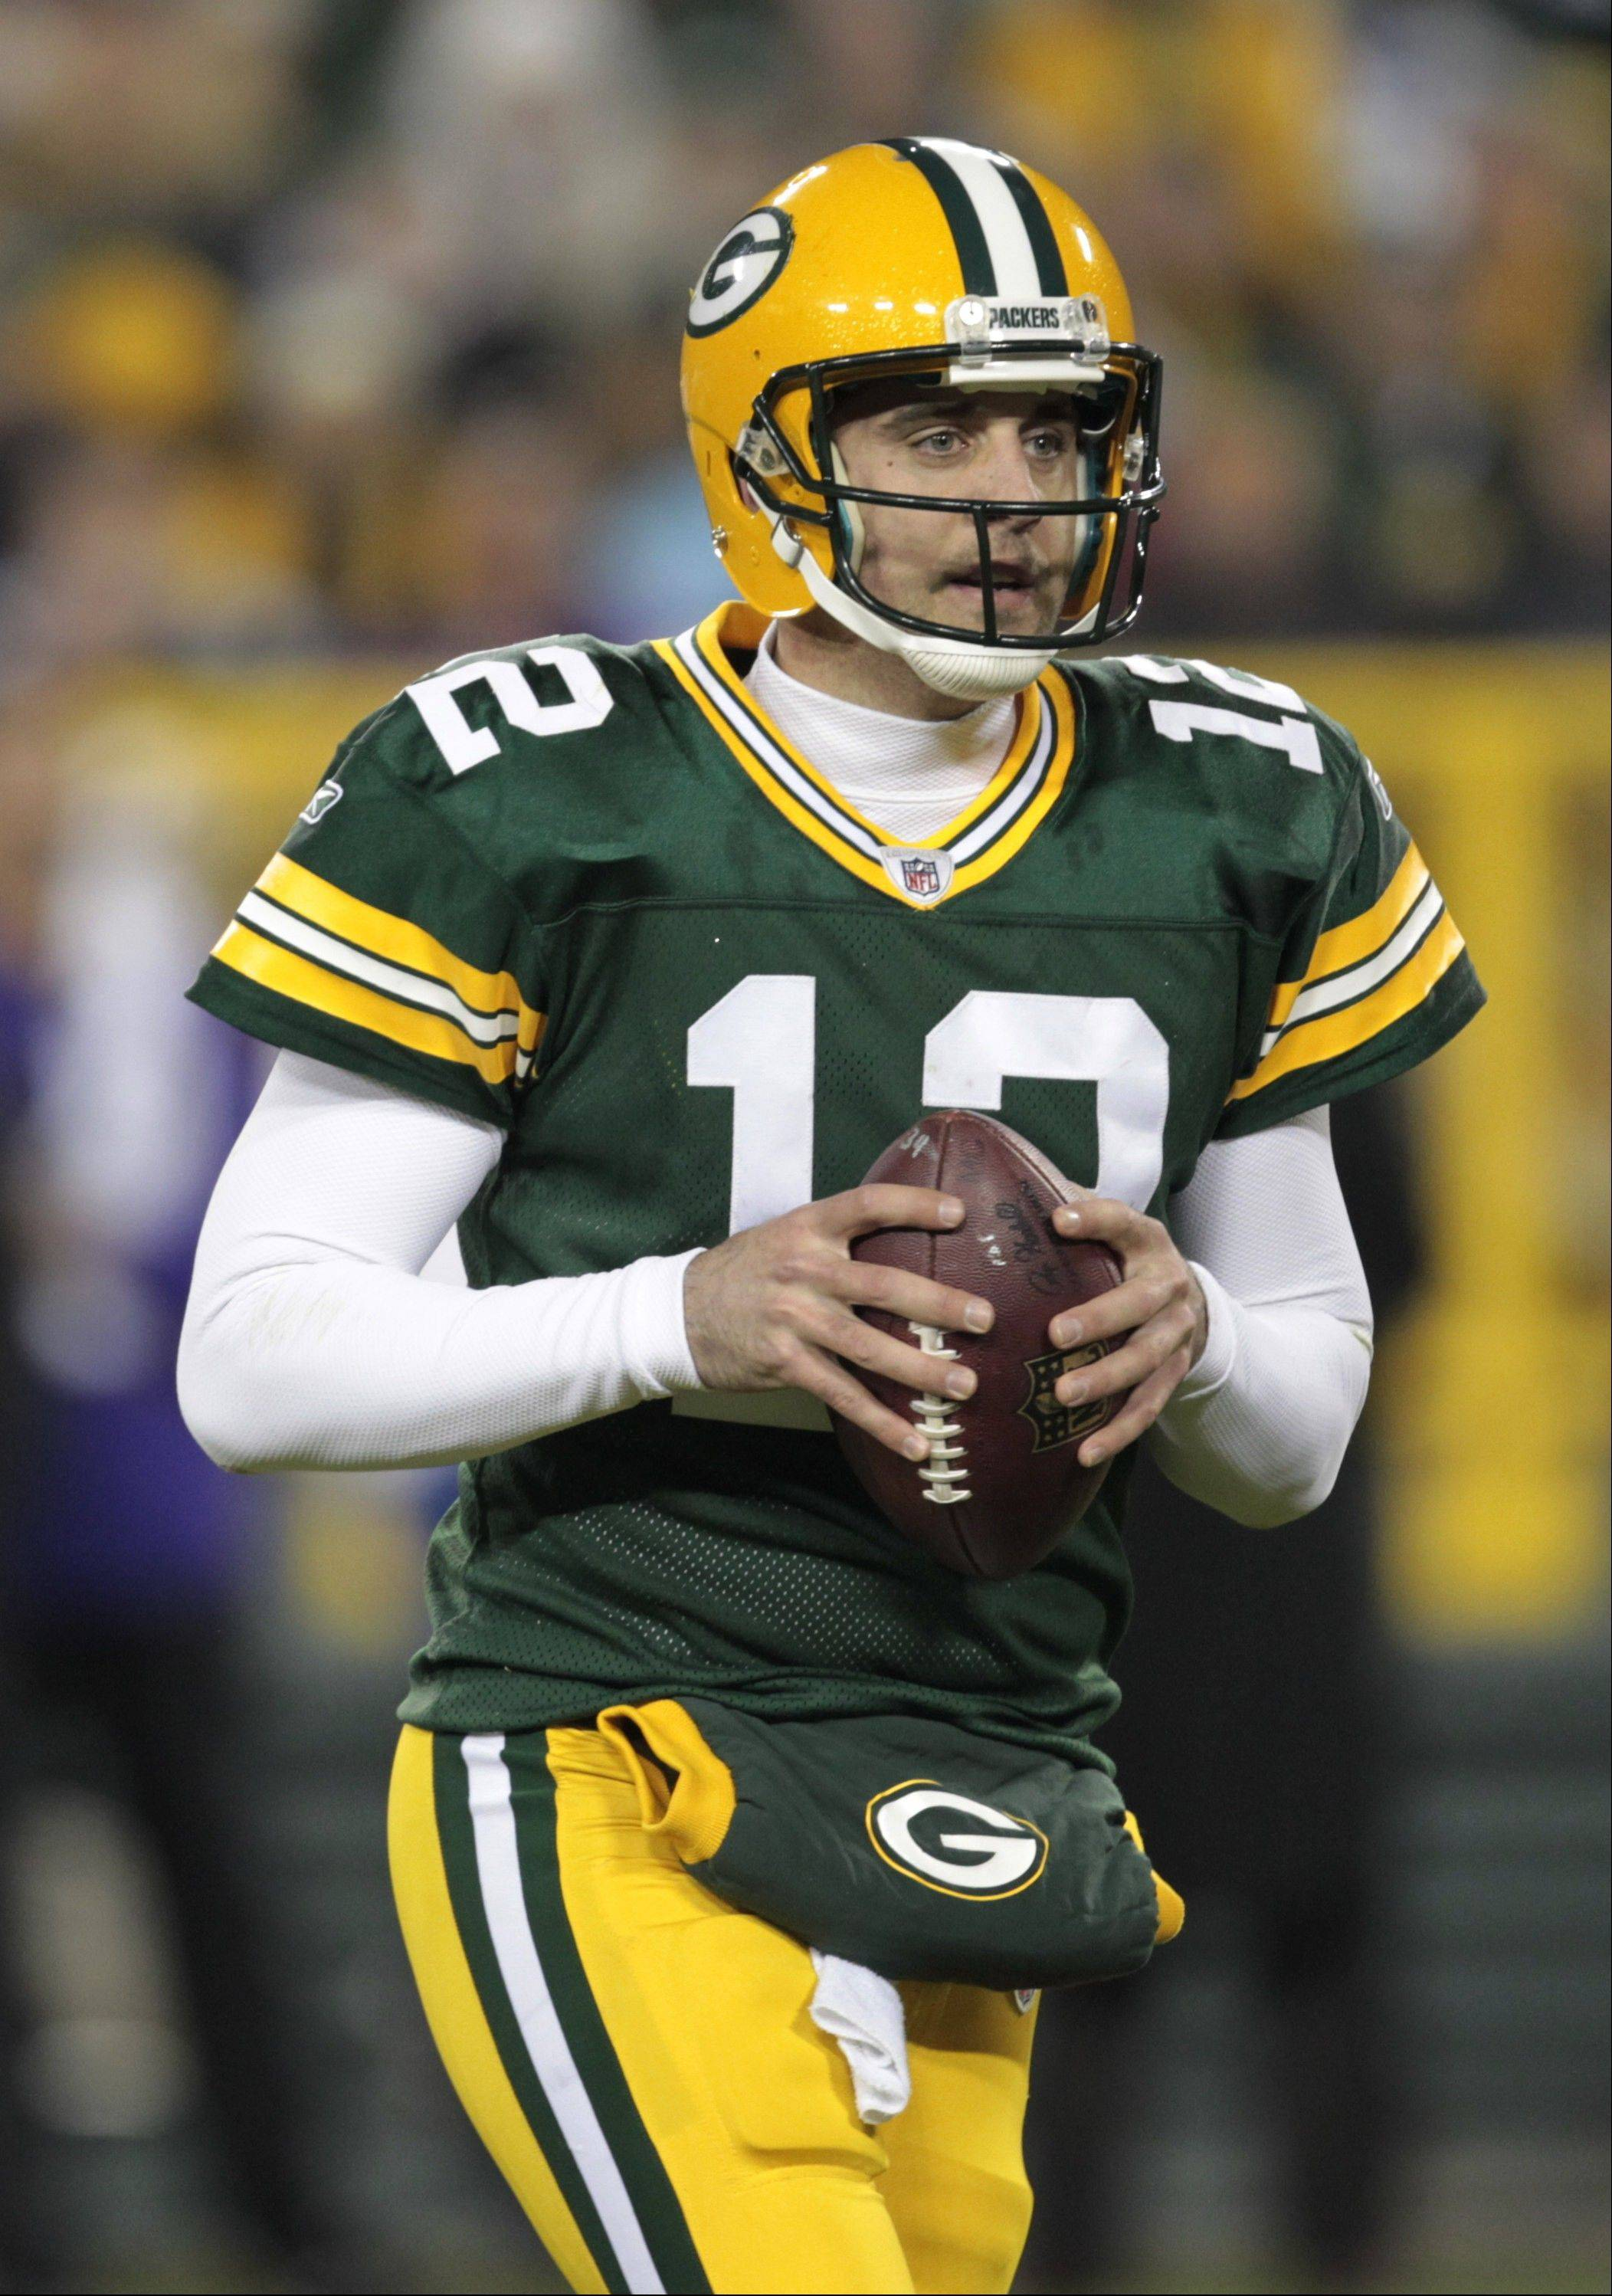 No one -- including the legendary Brett Favre -- has ever played quarterback at a higher level than Green Bay's Aaron Rodgers is playing now.